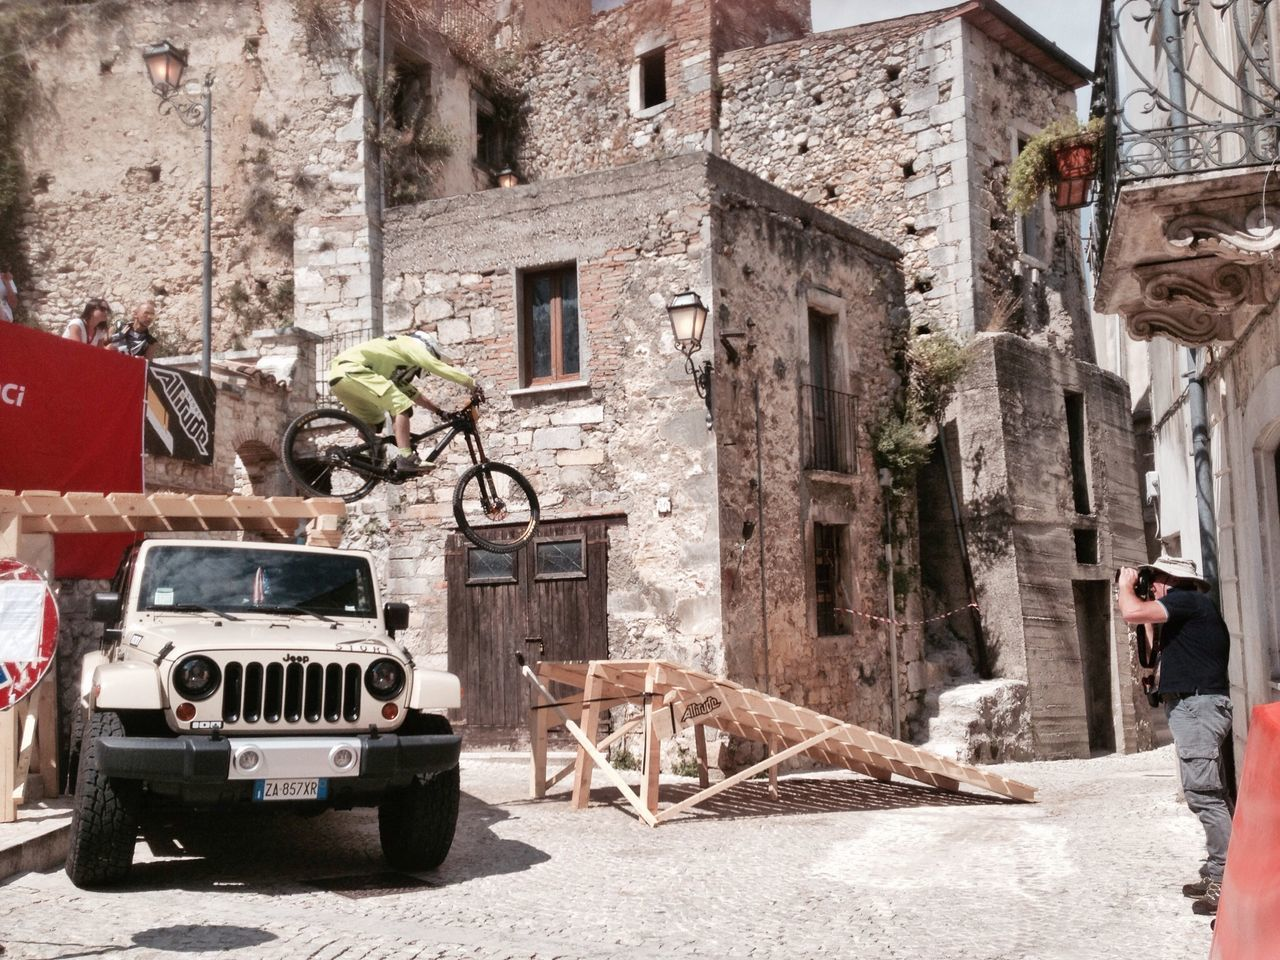 Pretoro downtown 23 agosto 2015 MTB Bycicle Pretoro Italy Abruzzo Ride Downtown Downhill Mountainbike